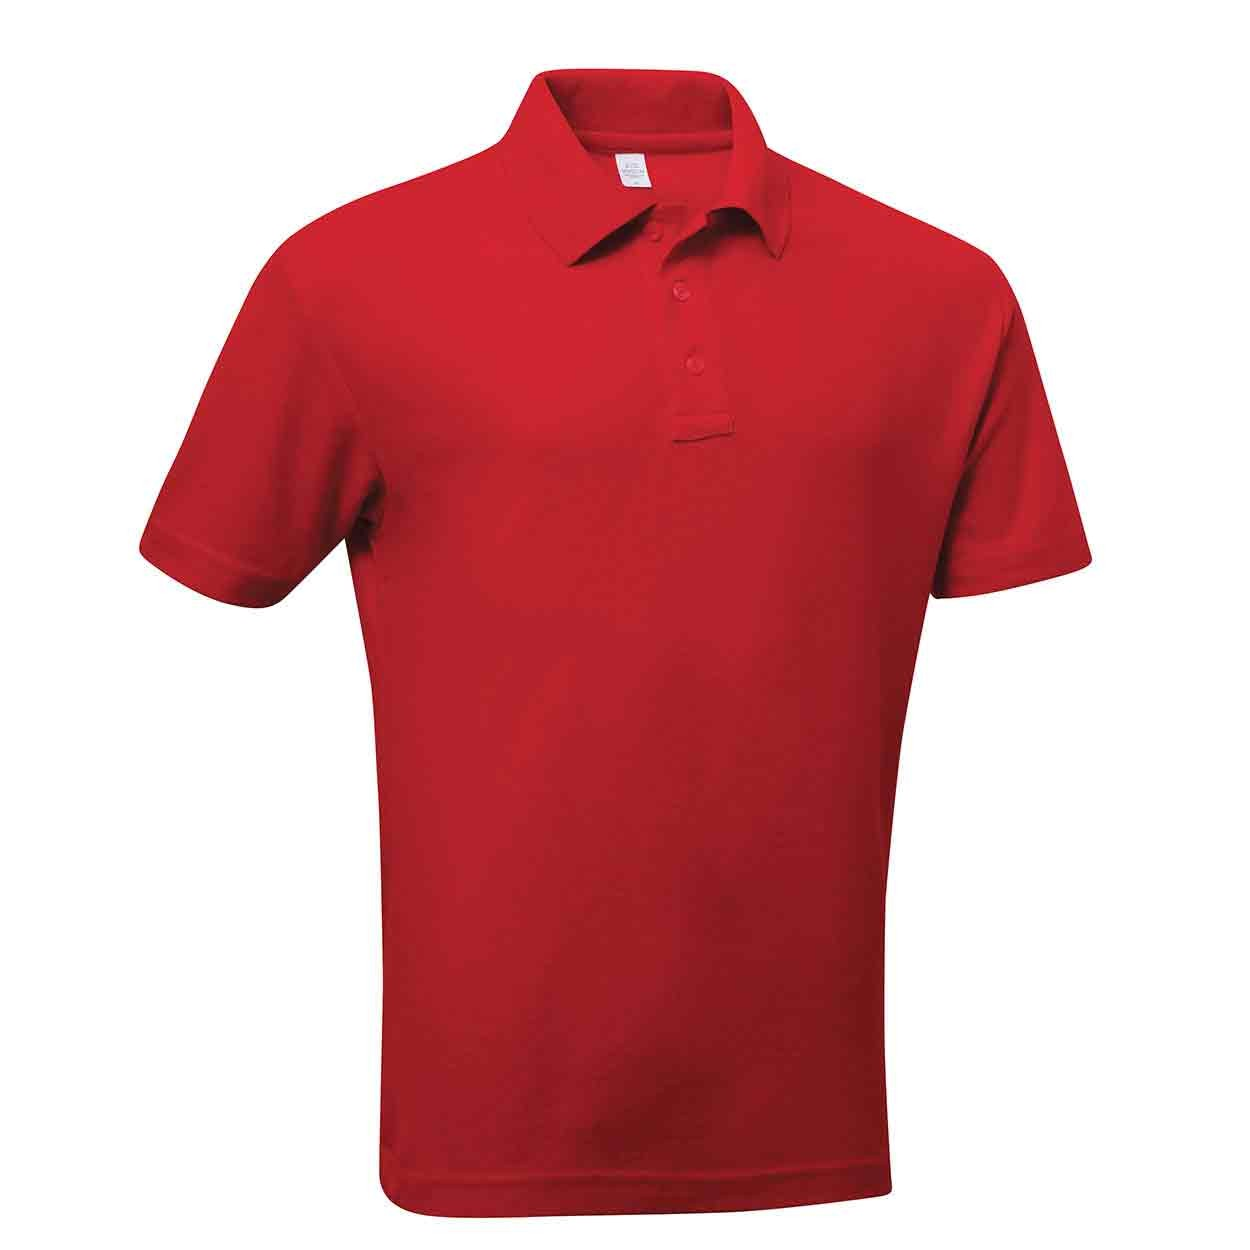 52fb90bdd Pro RTX RX105 Pro polyester polo - High Performance   Workwear Polo ...